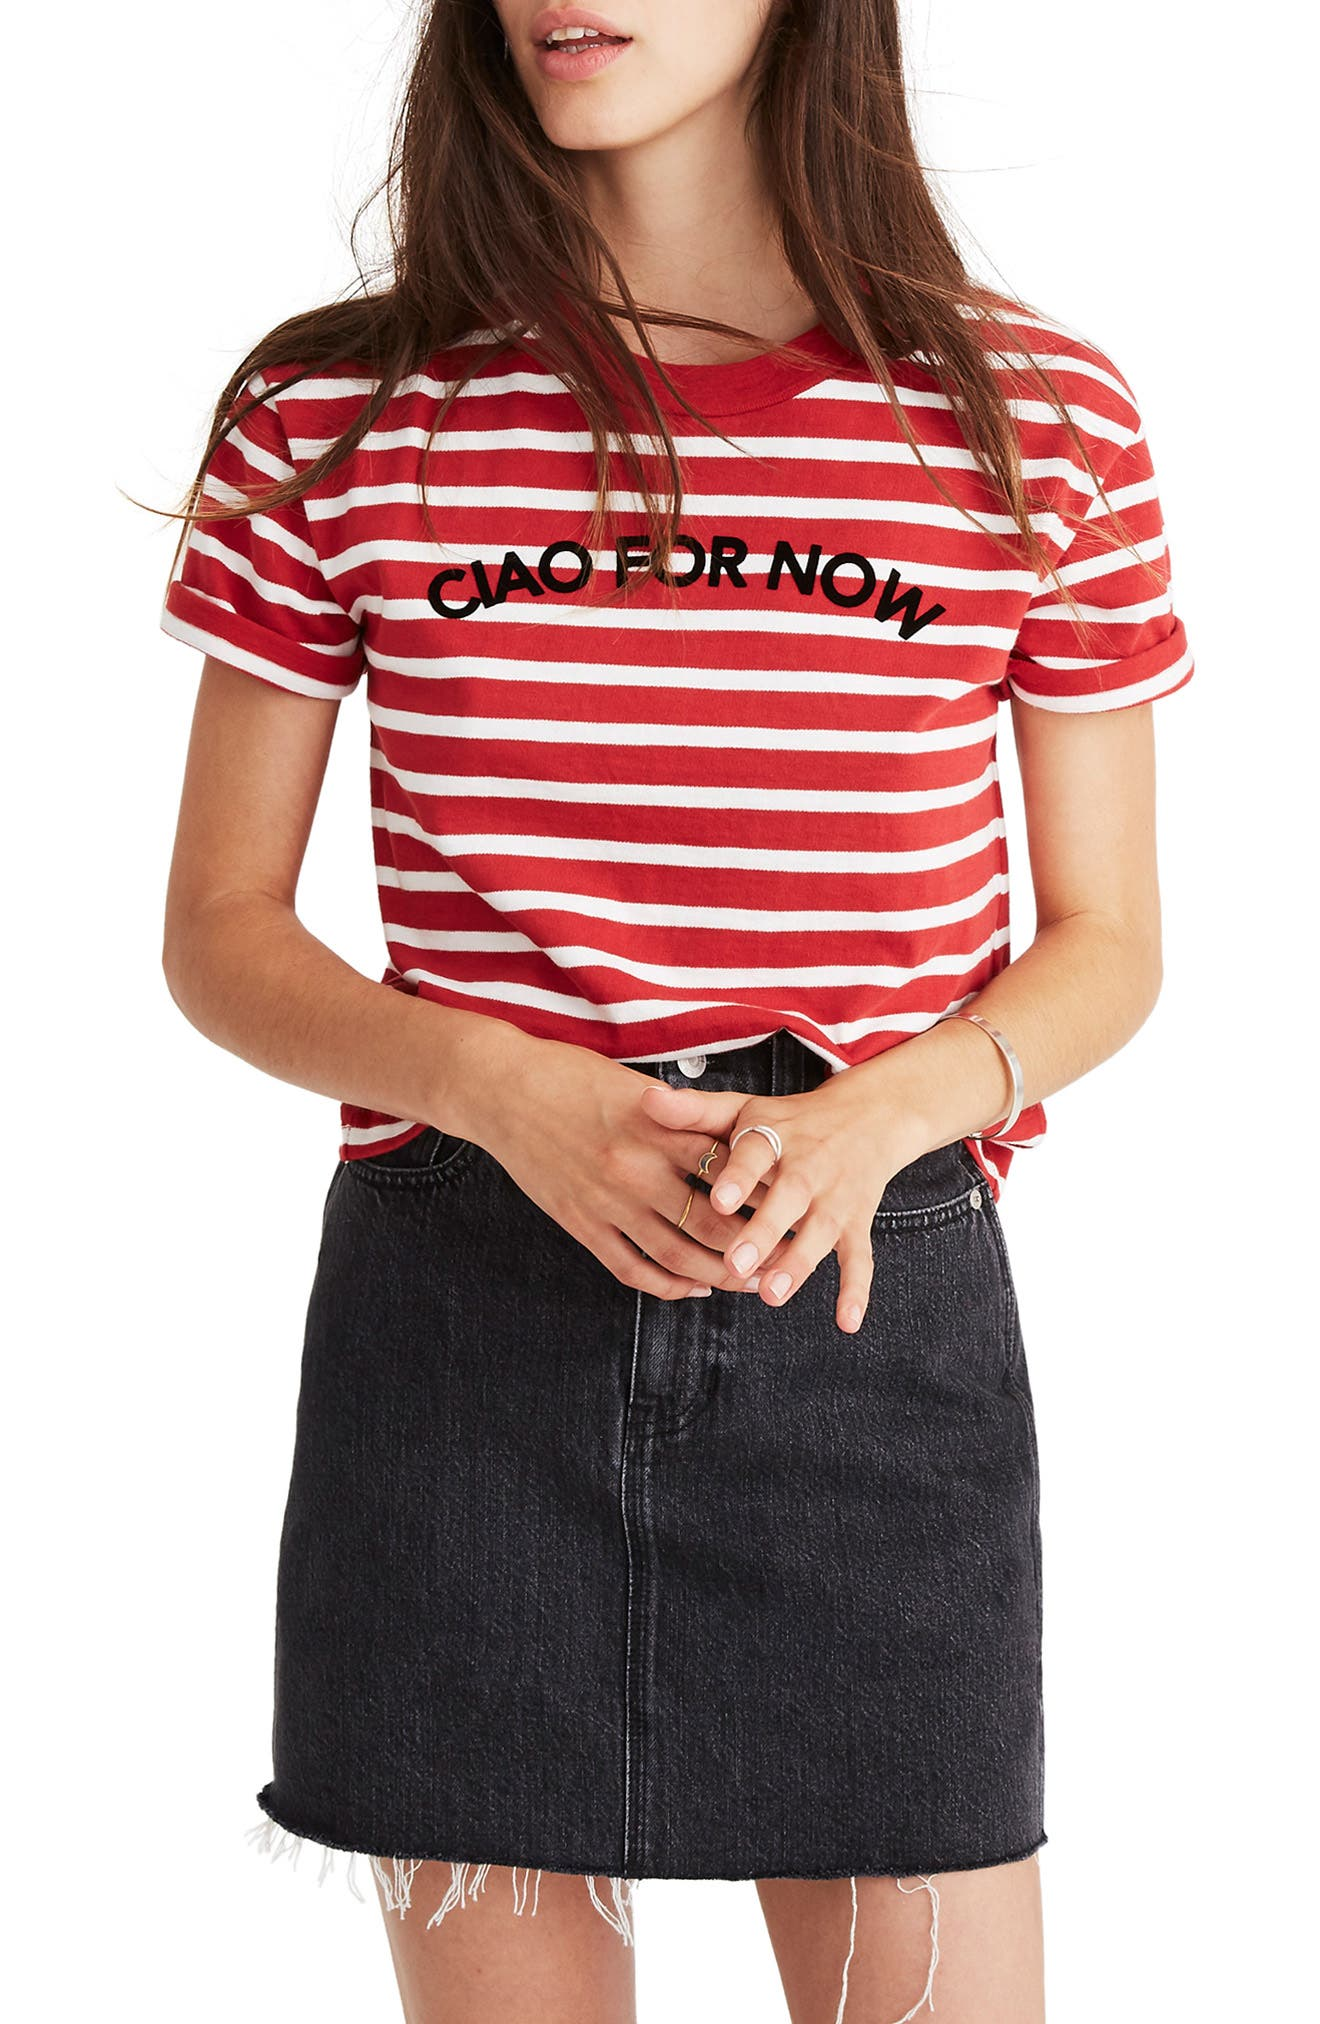 MADEWELL,                             Stripe Ciao for Now Tee,                             Main thumbnail 1, color,                             600